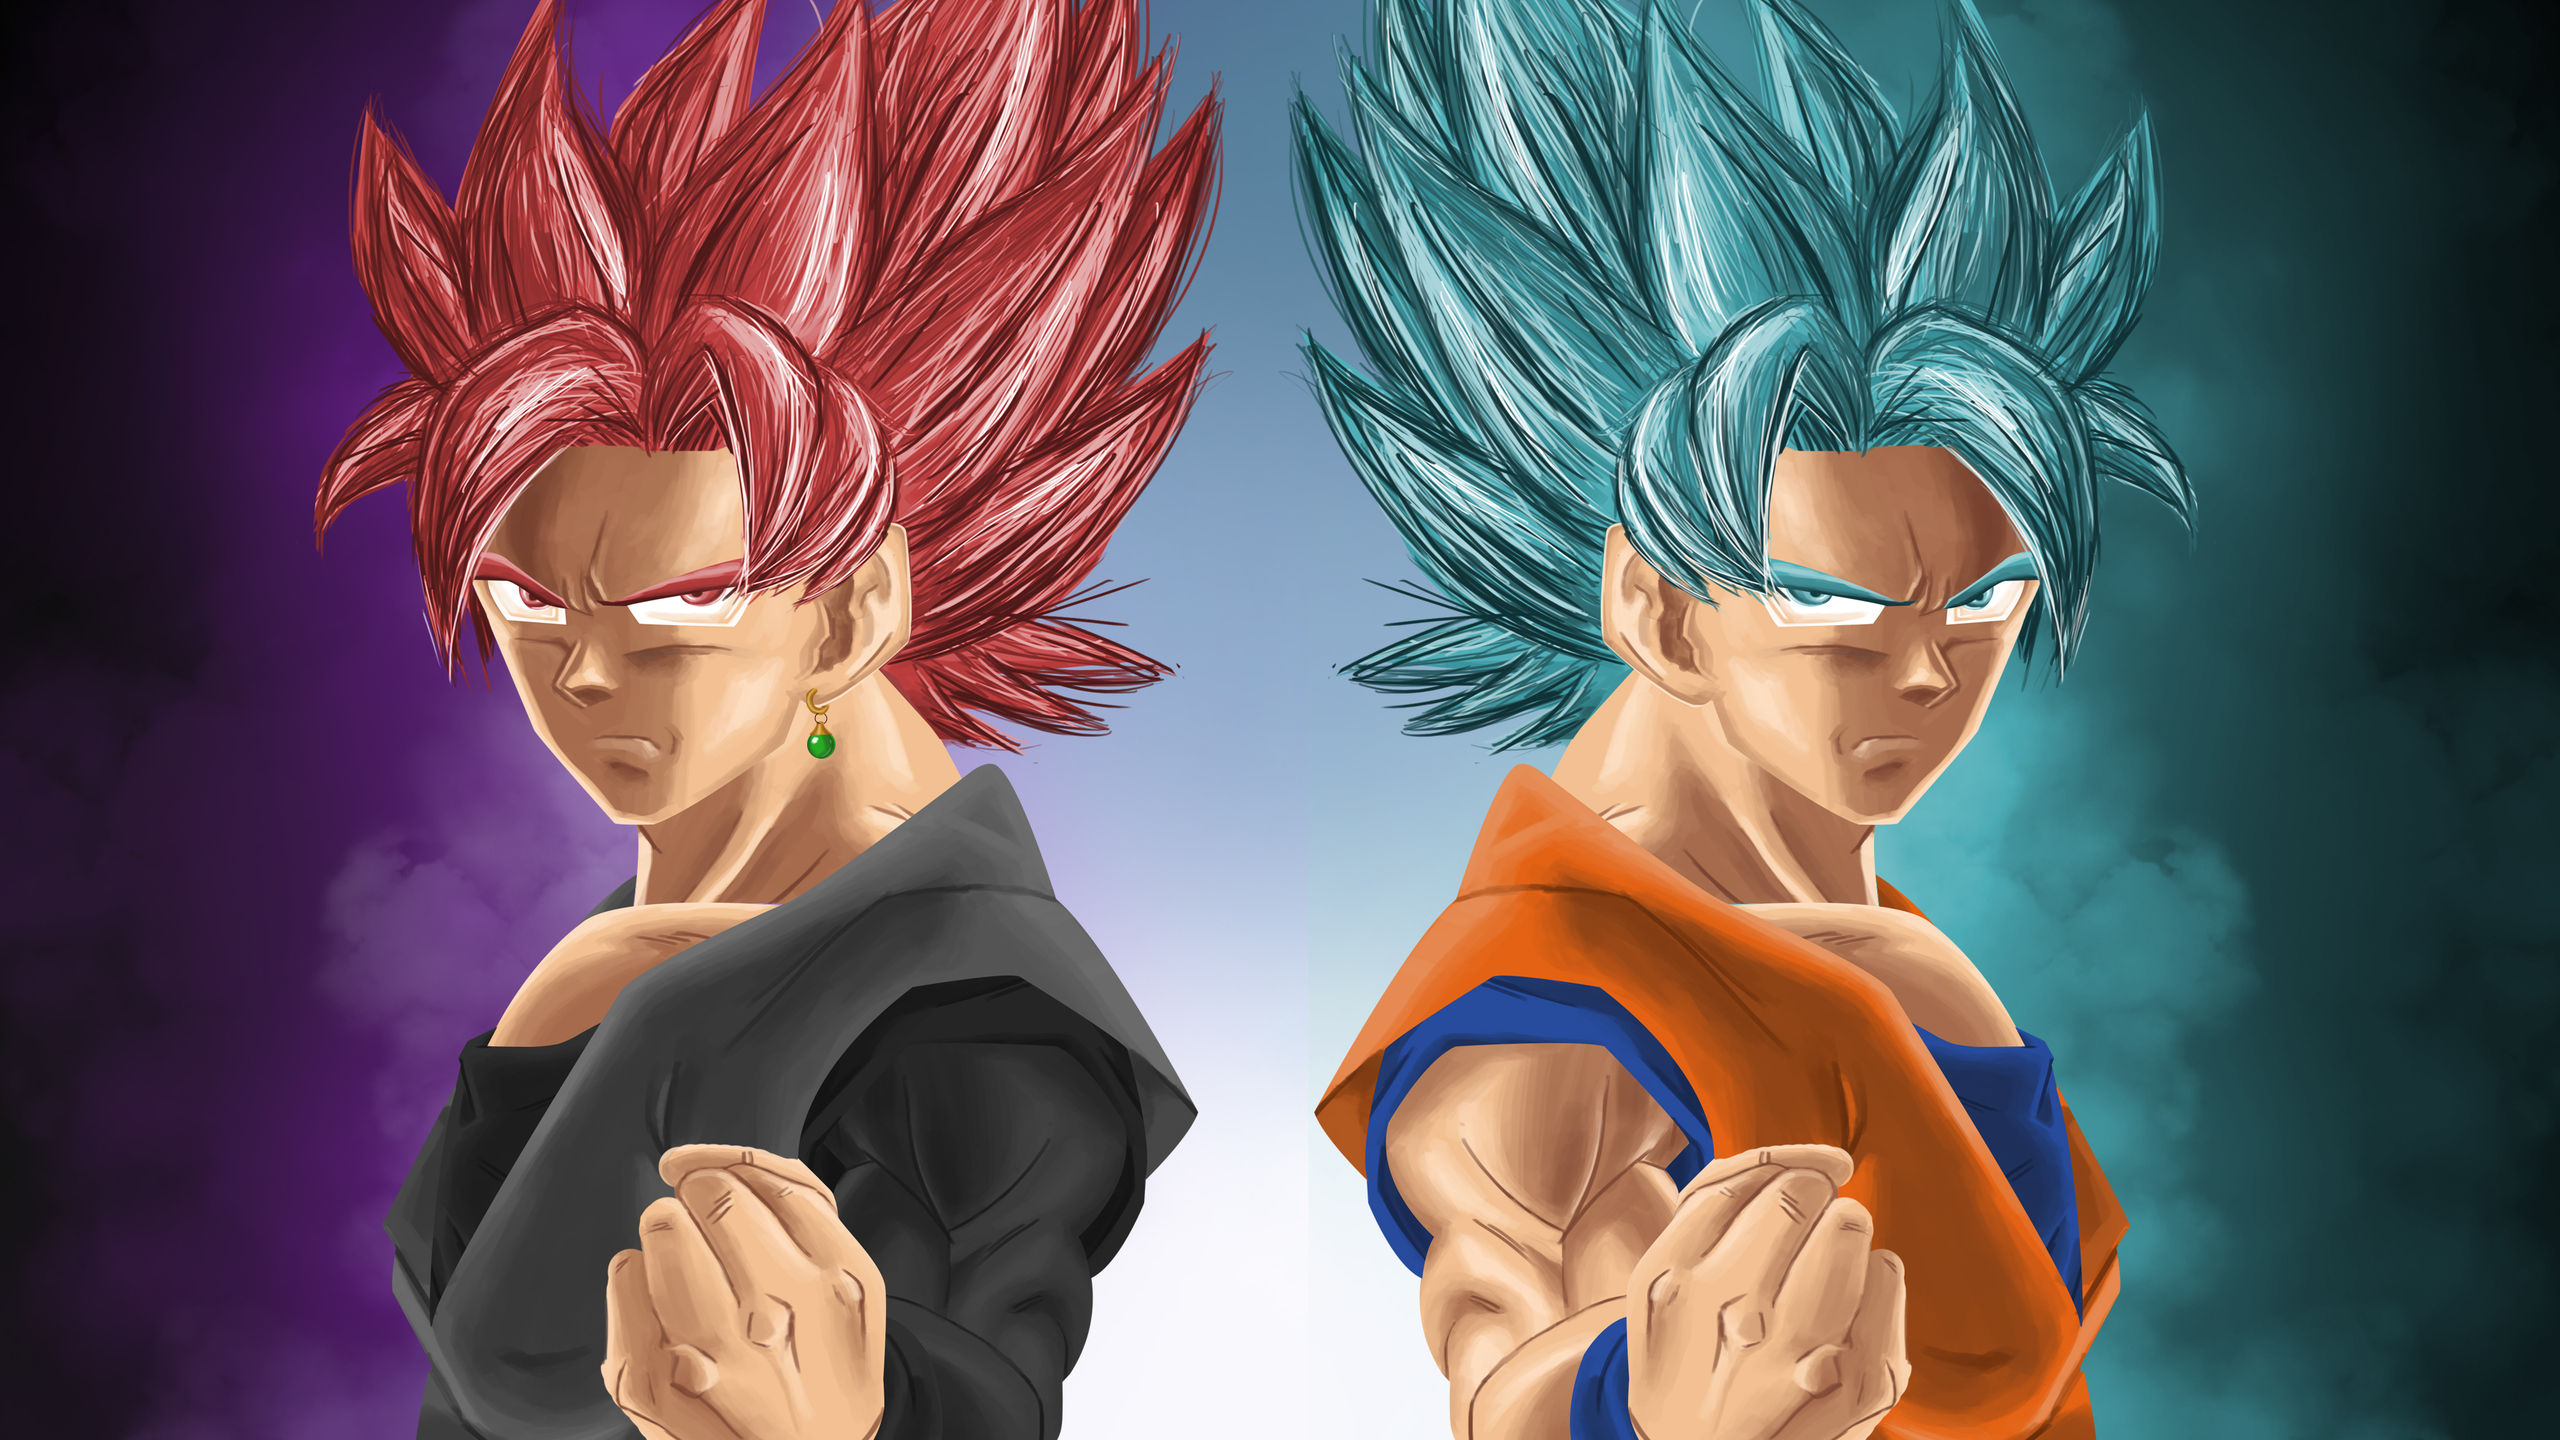 2560x1440 Goku And Black 1440p Resolution Hd 4k Wallpapers Images Backgrounds Photos And Pictures